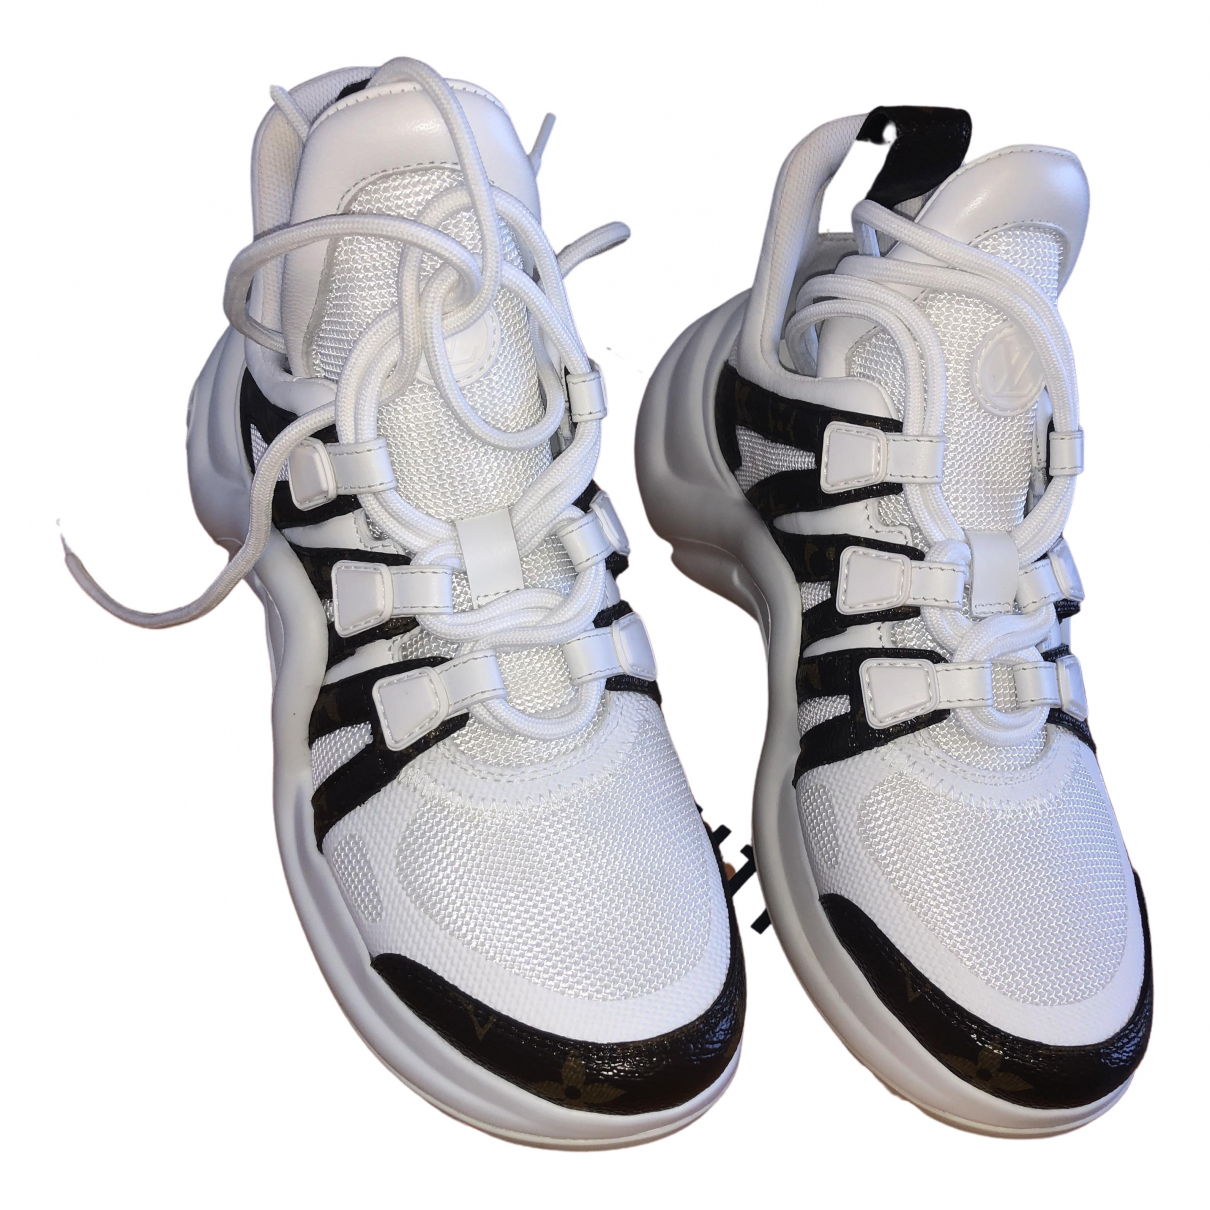 Louis Vuitton Archlight White Patent leather Trainers for Women 36 EU